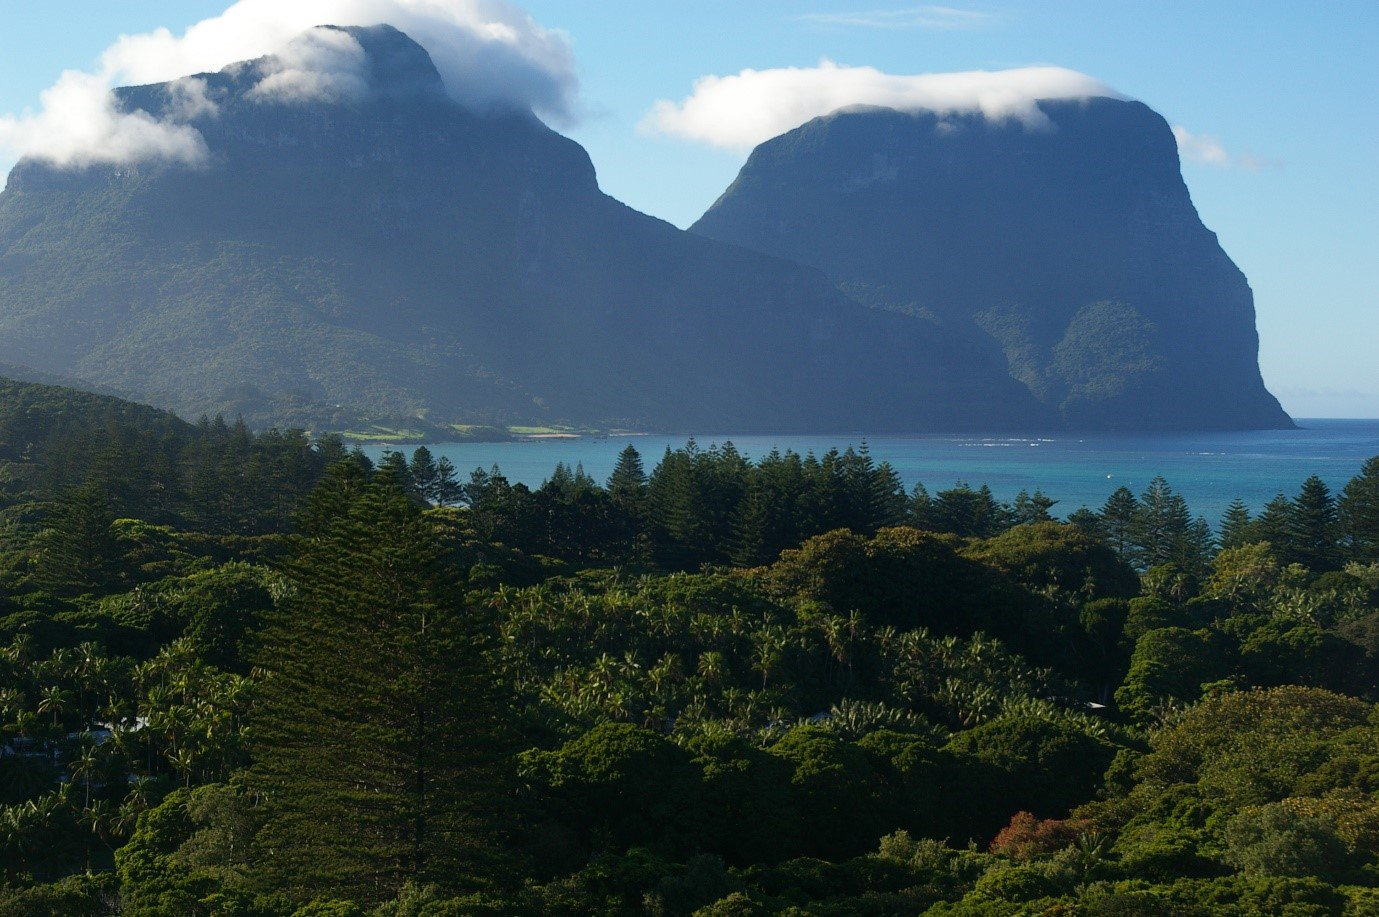 Mount Gower (875 m) at the southern end of Lord Howe Island, where the Woodhen made its last stand